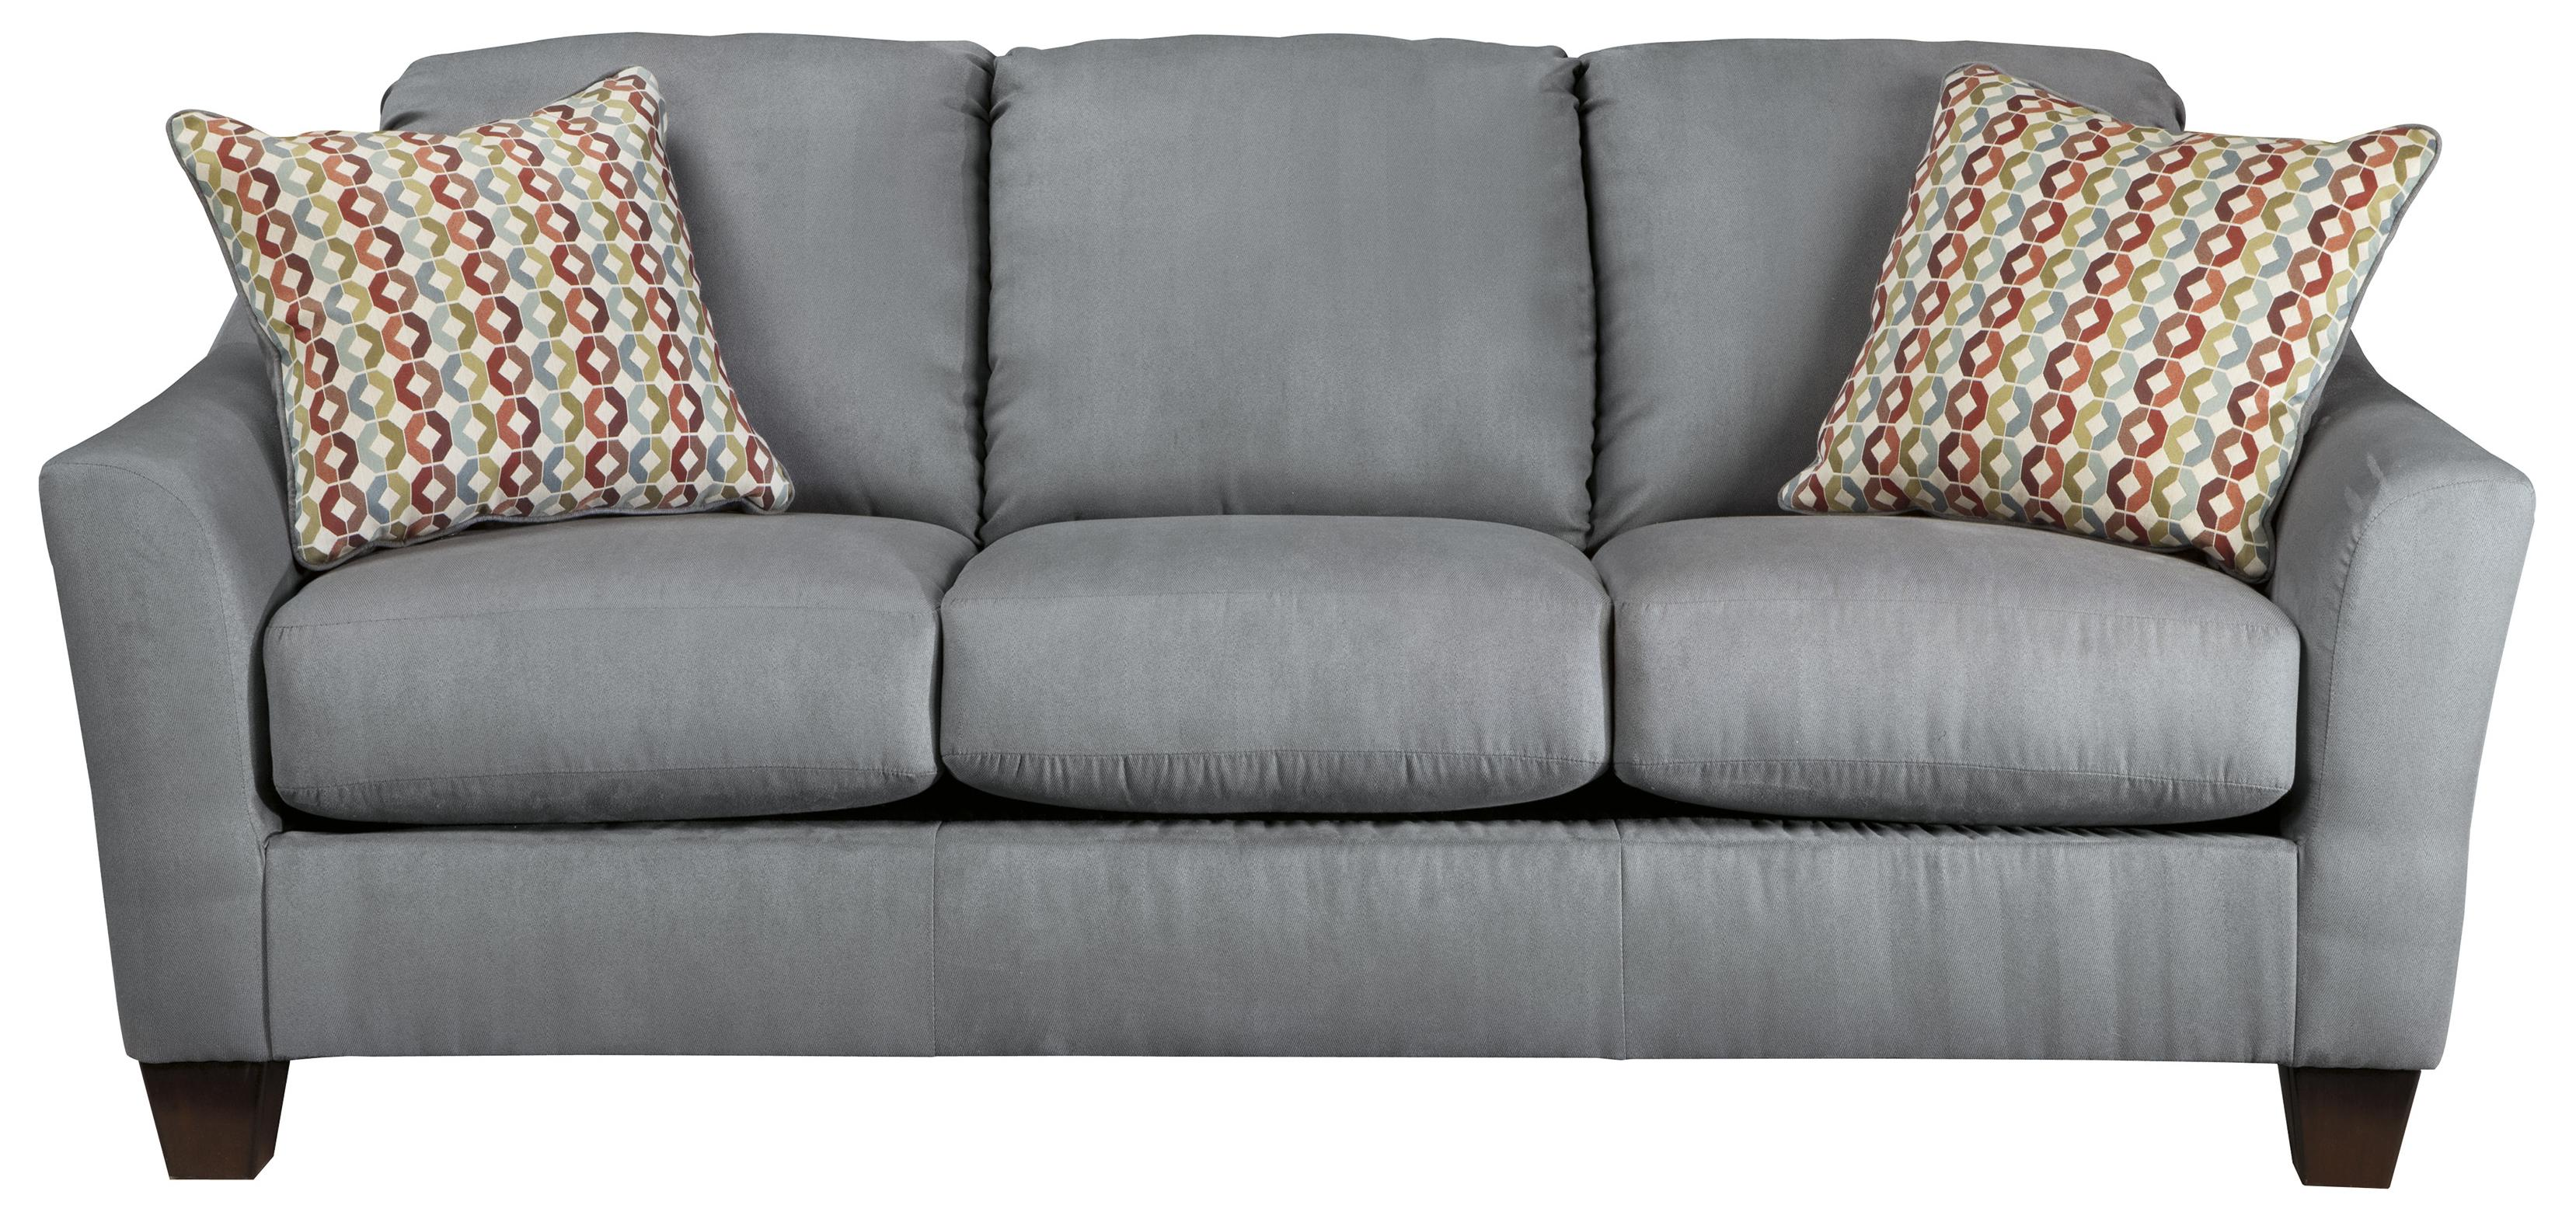 Signature Design by Ashley Talia Queen Sofa Sleeper - Item Number: 9580239